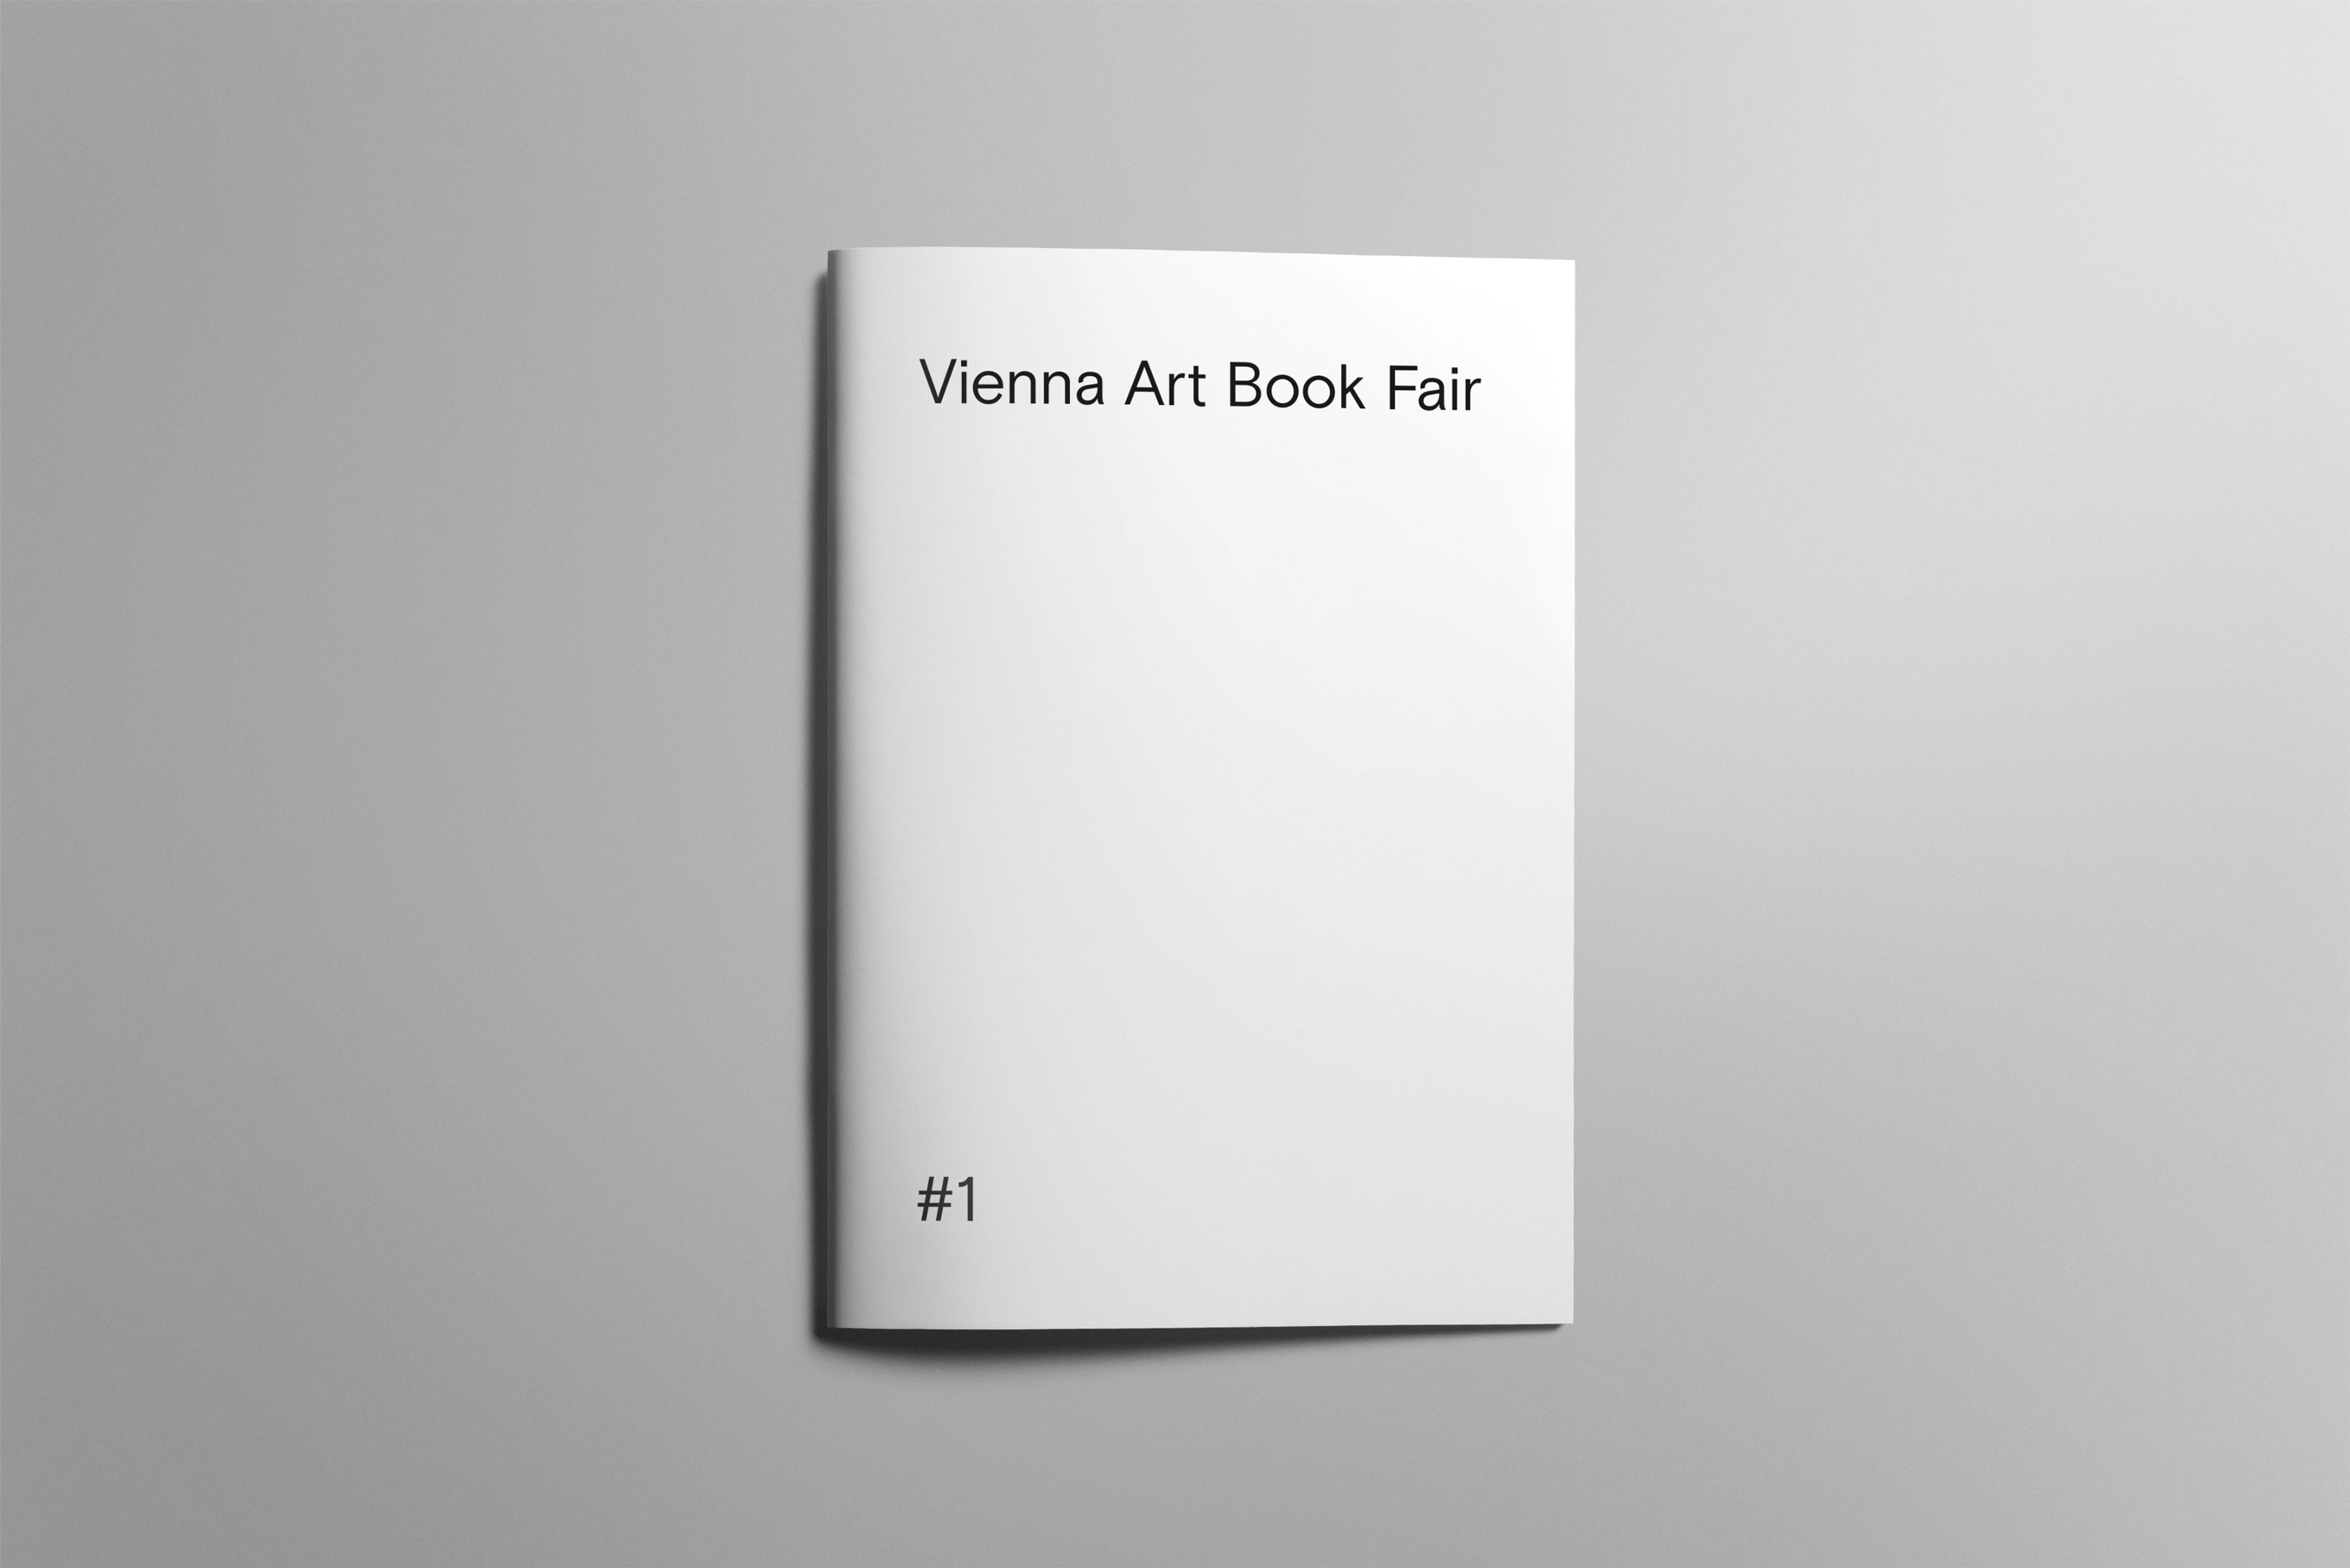 vienna-art-book-fair-catalog-01